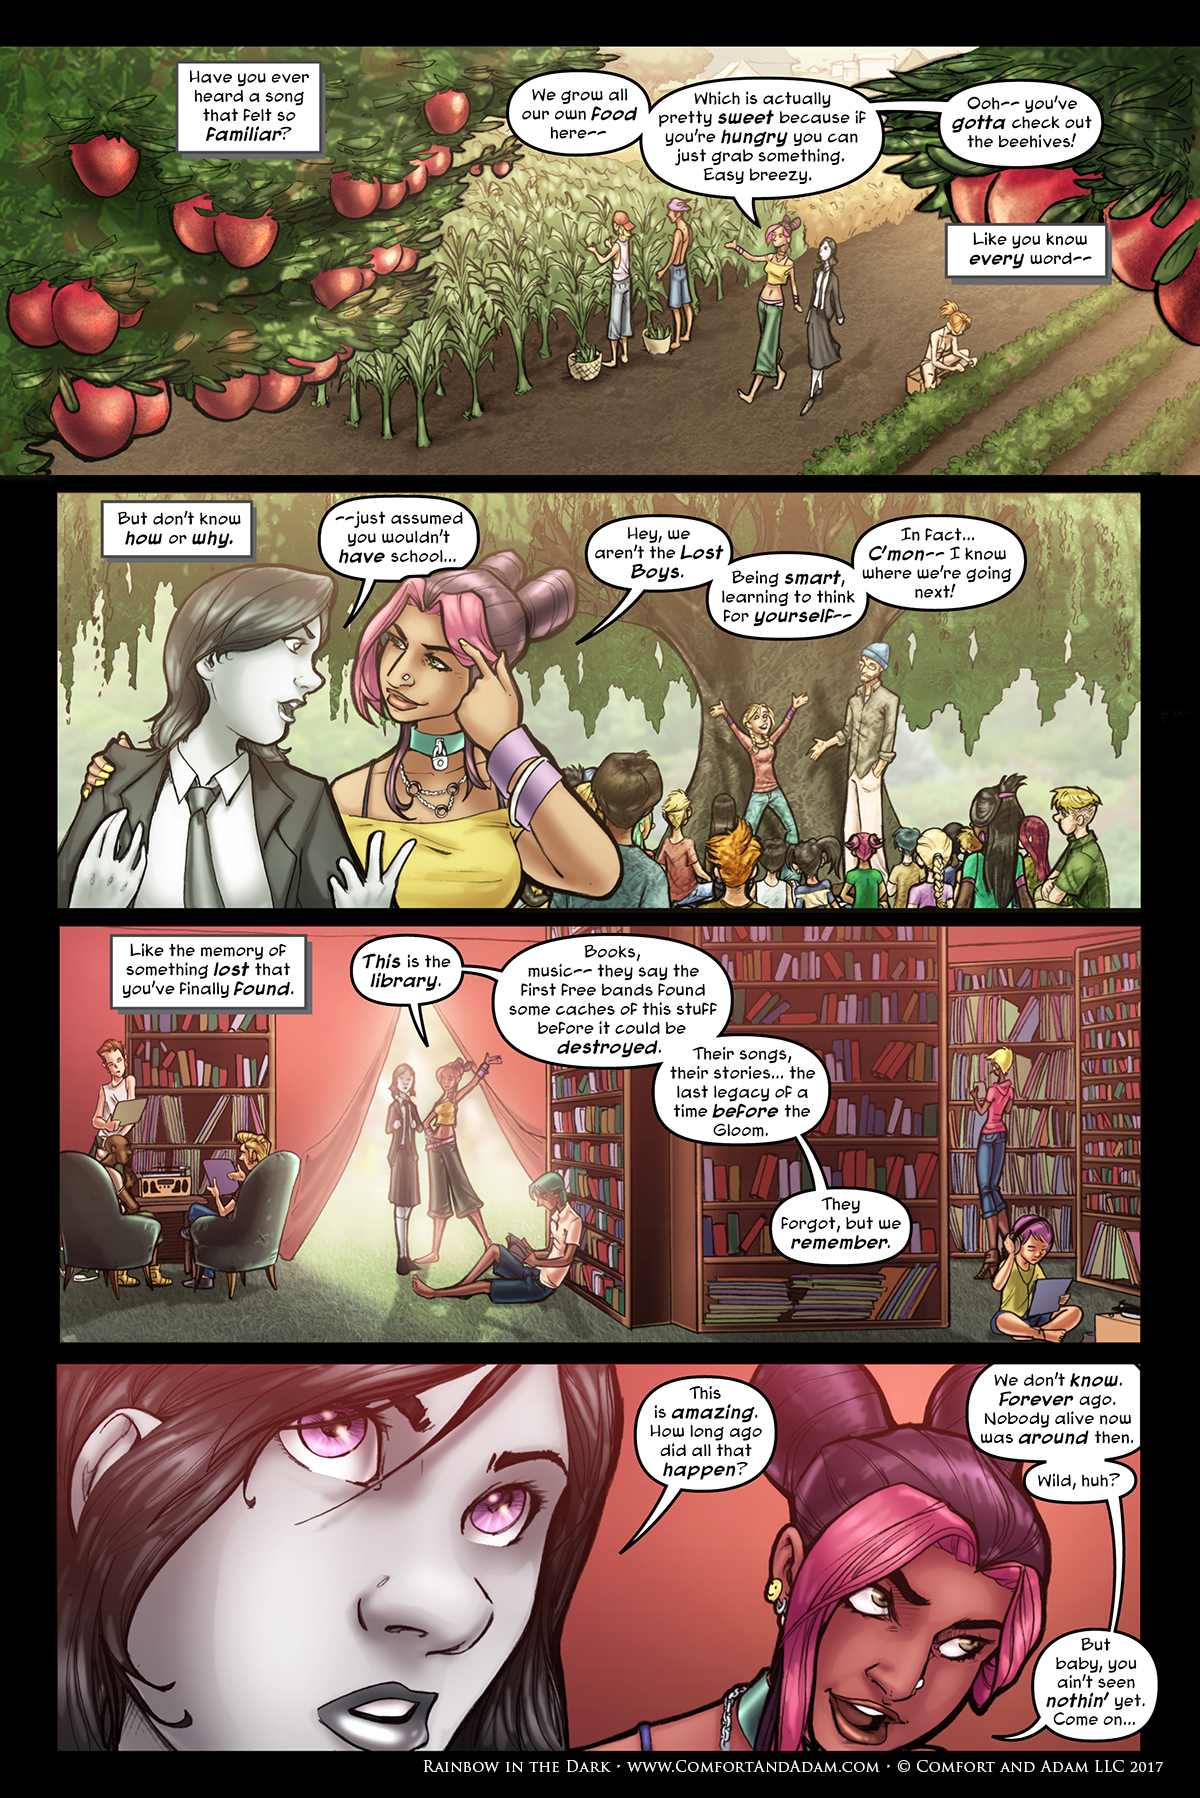 Rainbow in the Dark #2, pg. 7: Learning About the Camp